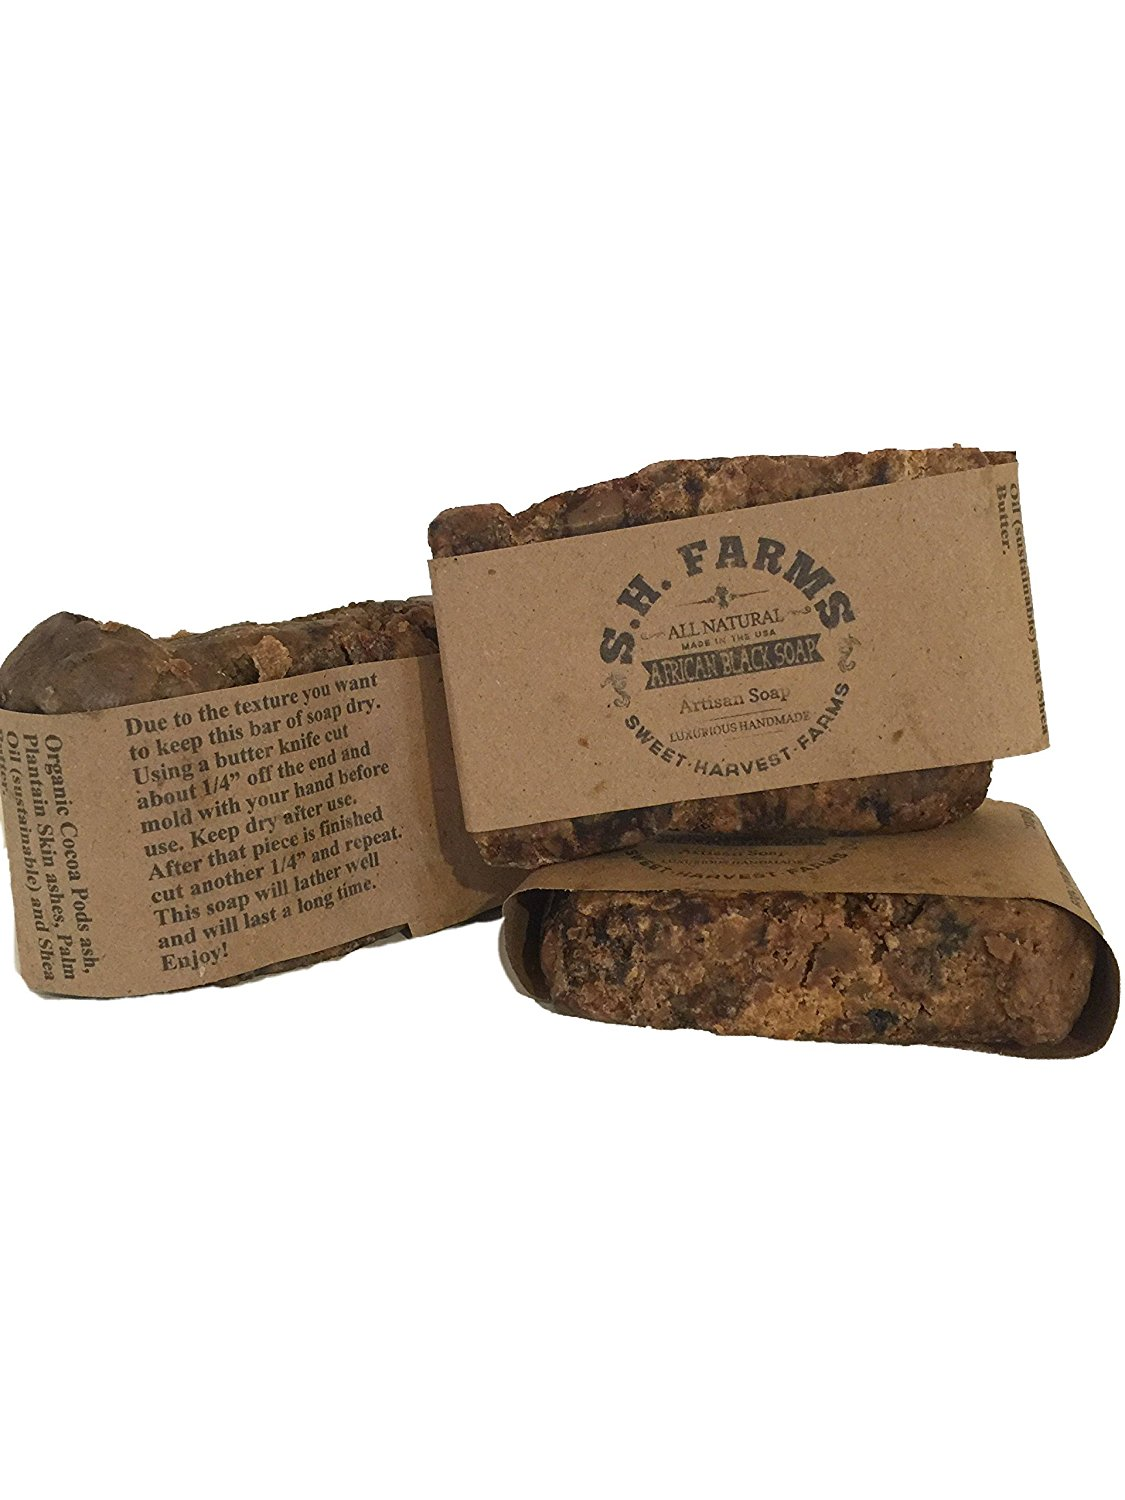 RAW African Black Soap - All Natural and Organic Ingredients- Best for Acne, Eczema, Psoriasis, Scars, and Dry skin -For Face & Body 100% Handcrafted Artisan Beauty Bar - Lasts 6-8 weeks!